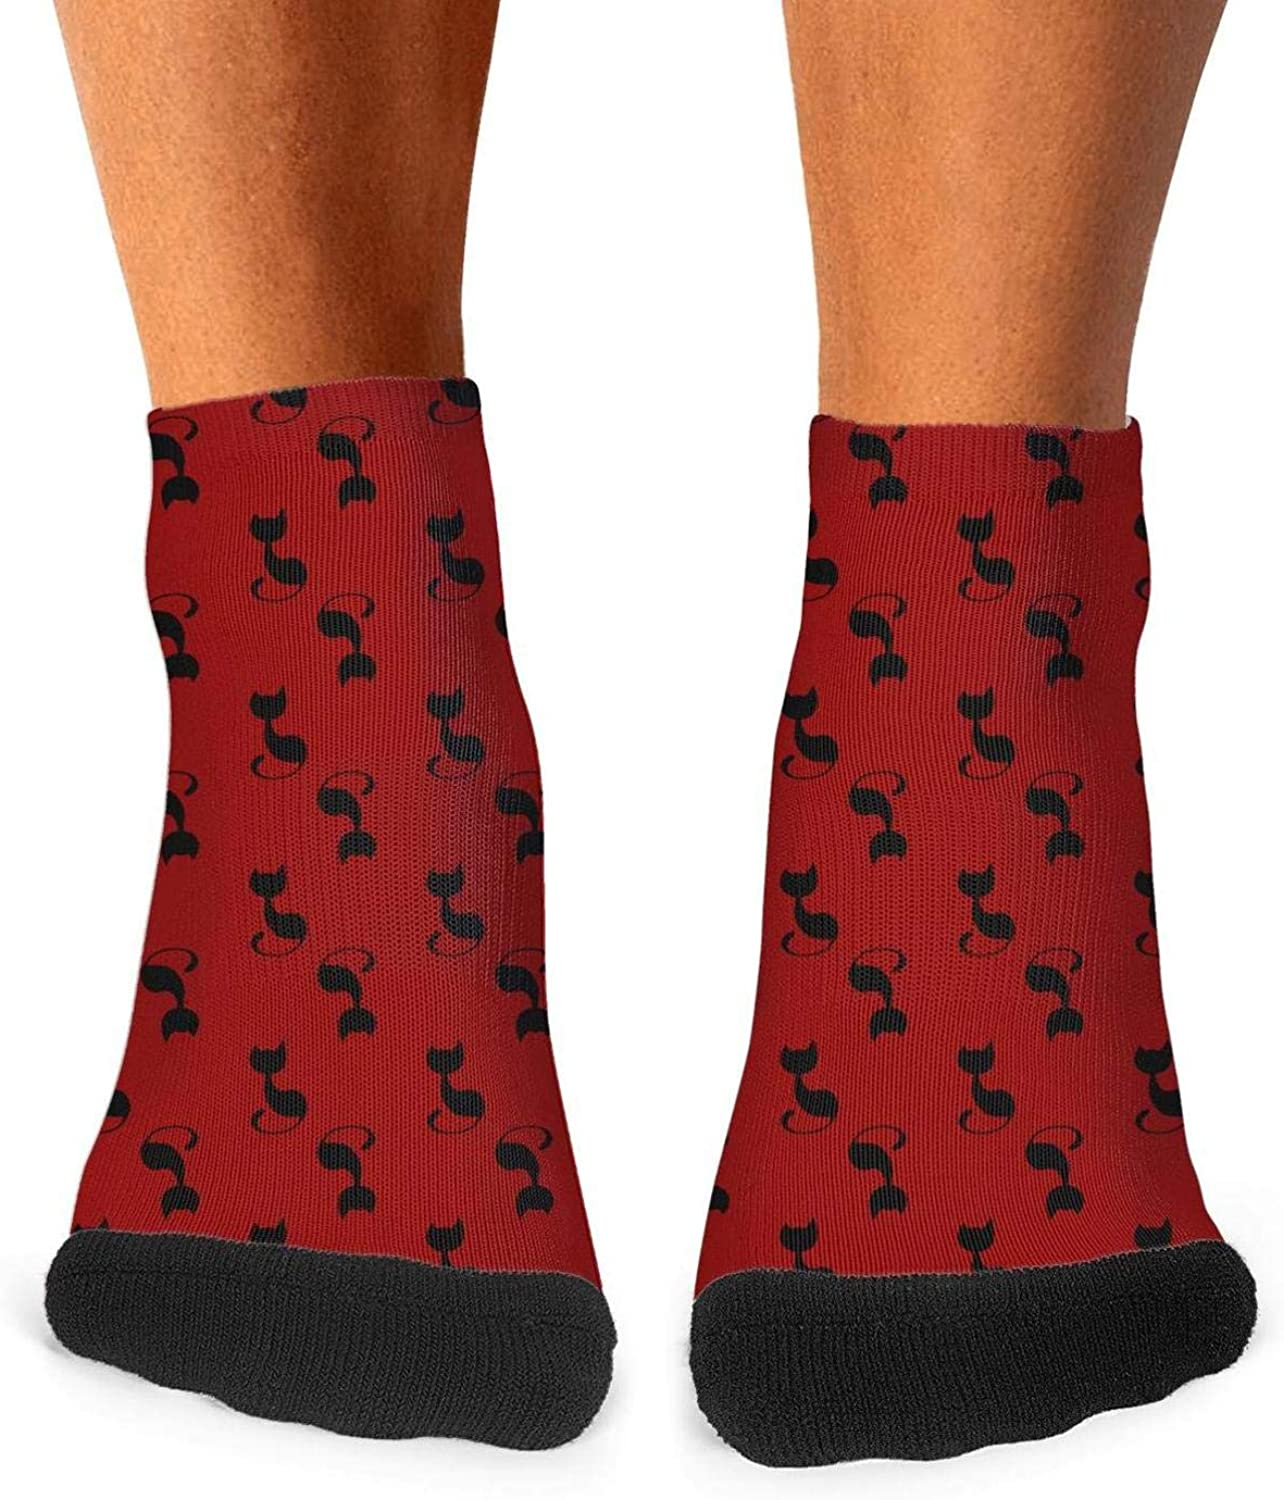 Floowyerion Mens Cute Cat Face and Footprint Novelty Sports Socks Crazy Funny Crew Tube Socks